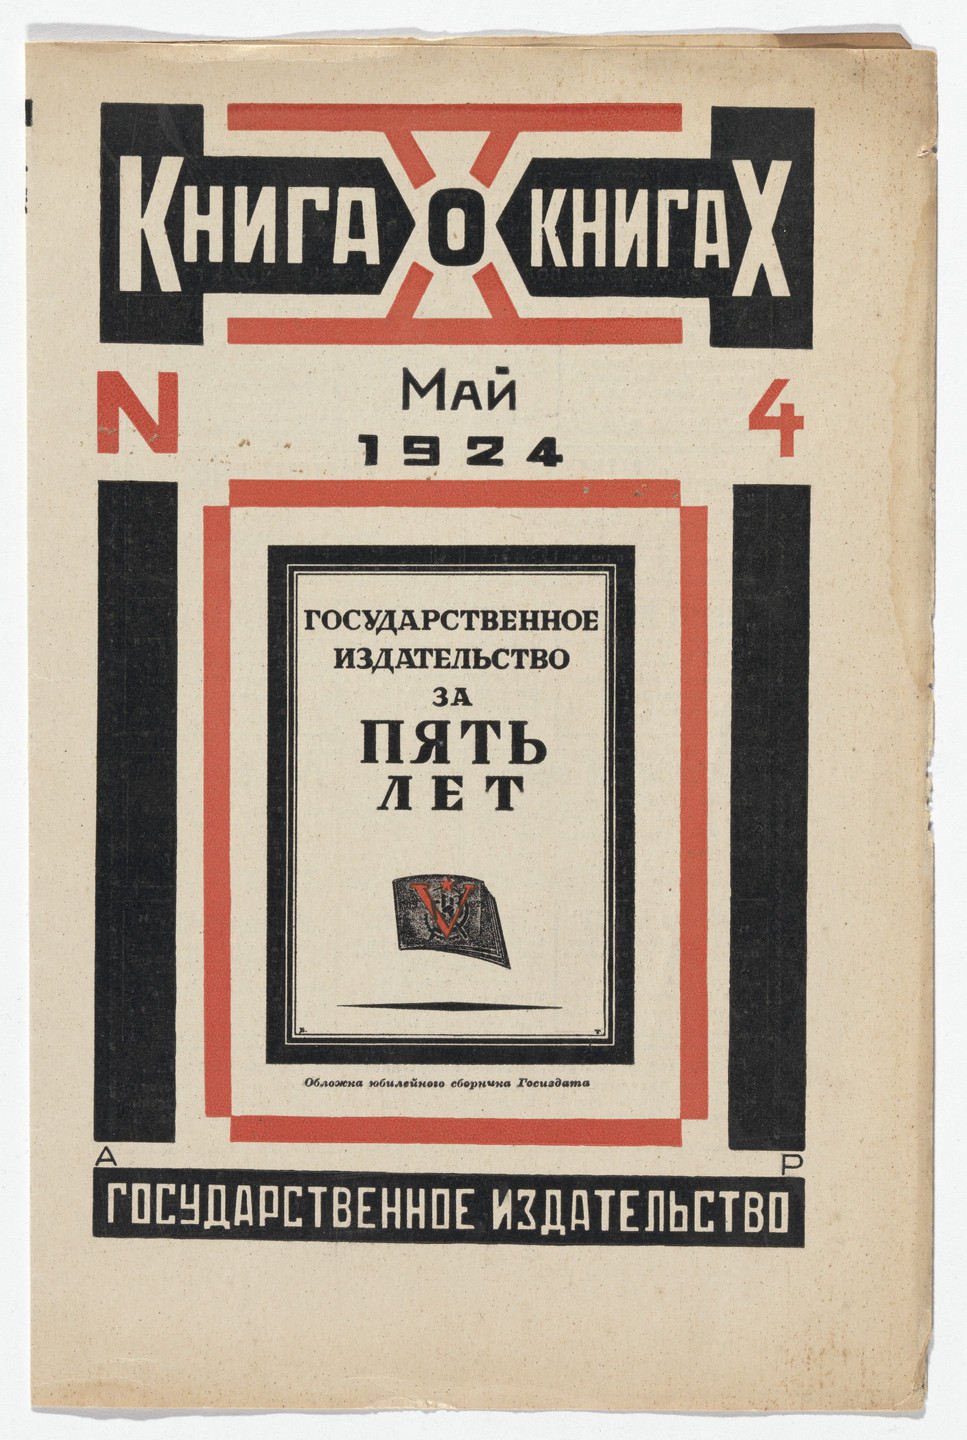 Aleksandr Rodchenko. Printer's proof of cover for Kniga o knigakh (Book about Books), no. 4. 1924